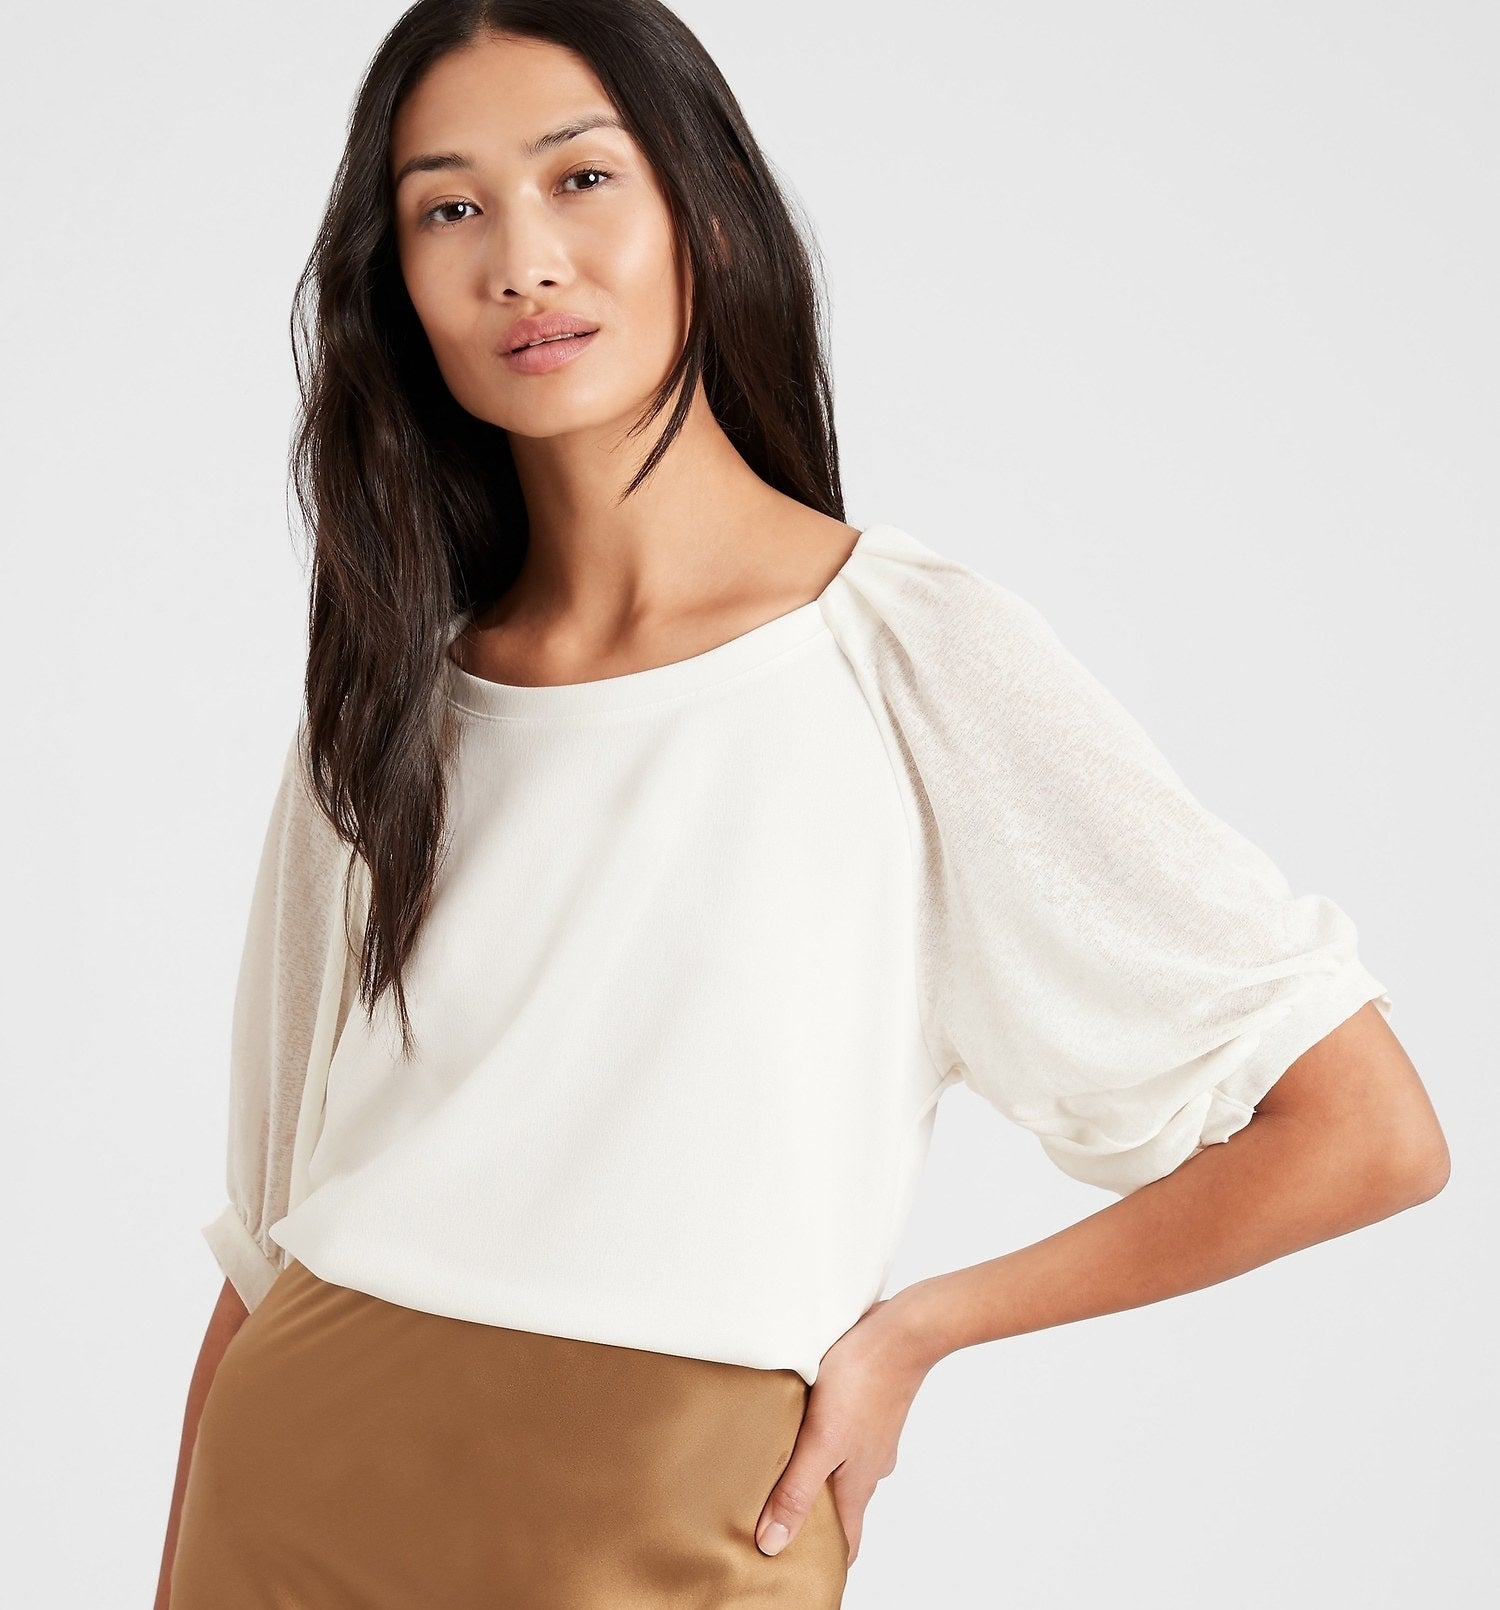 Model is wearing a white top with balloon sleeves and a tan skirt